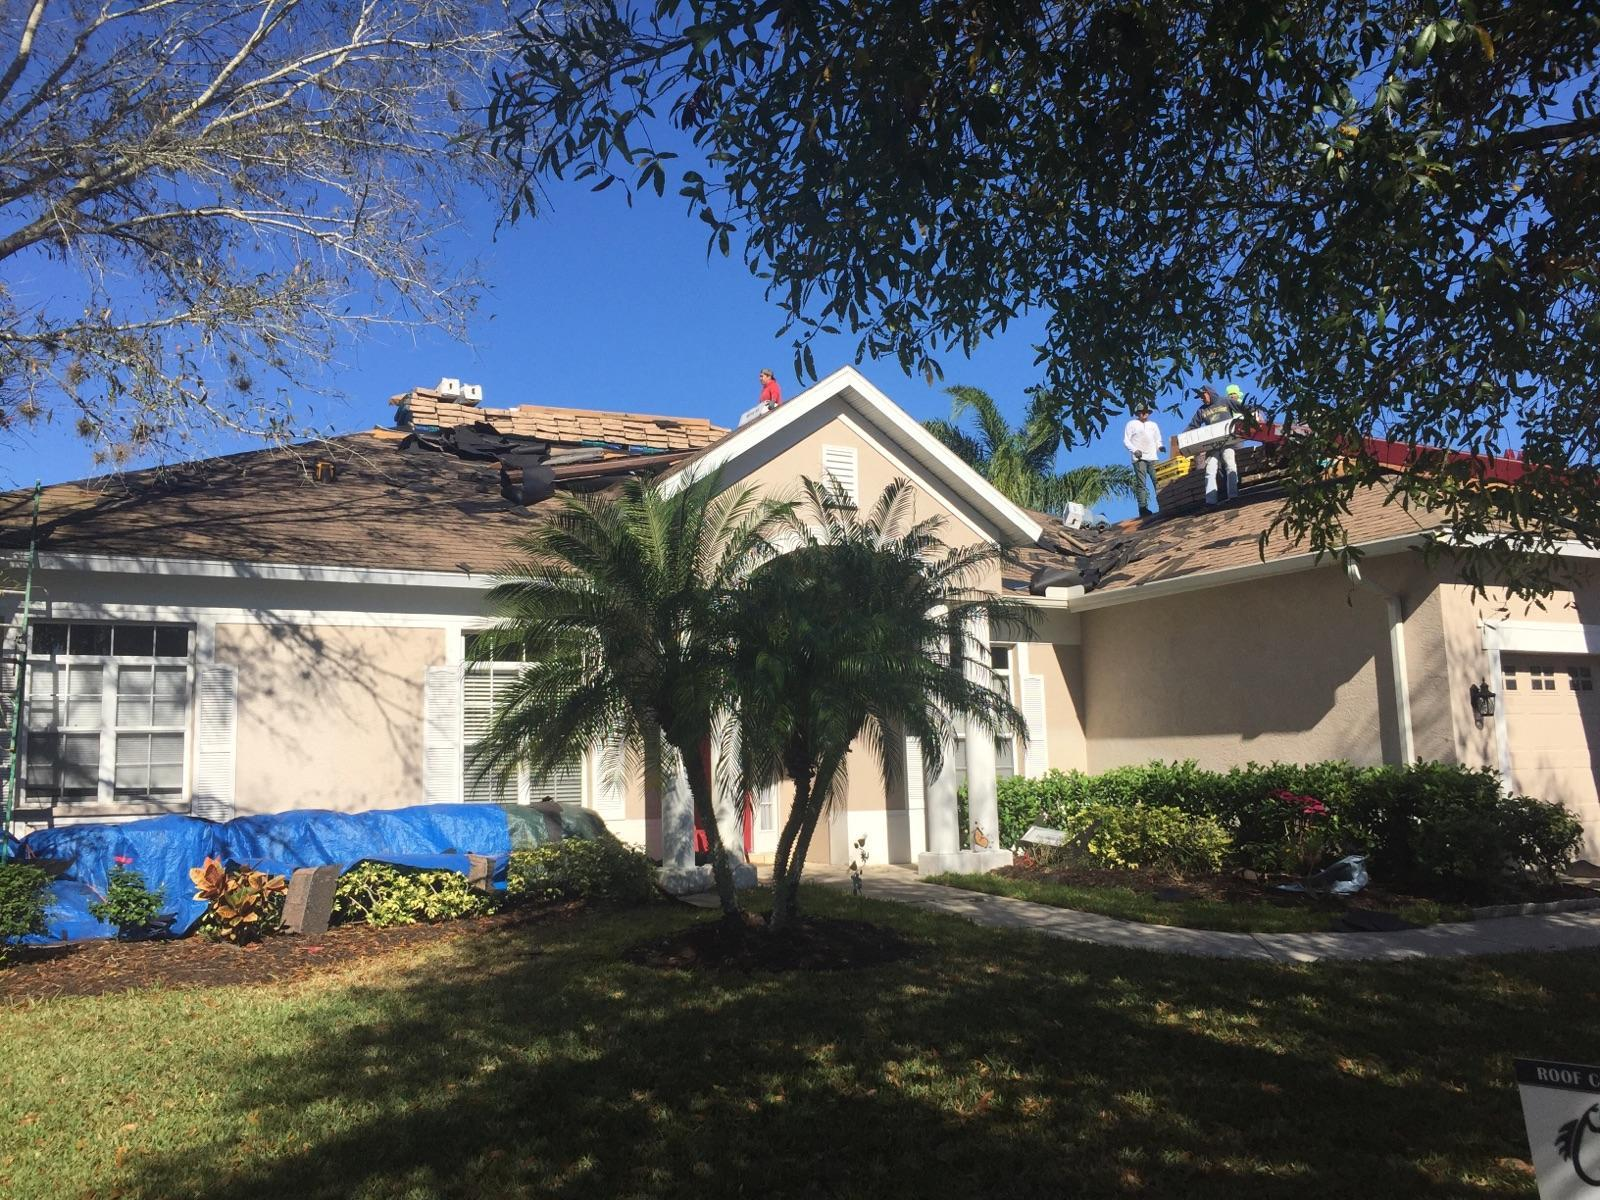 Roof Repair In Progress - Get Coastal Exteriors